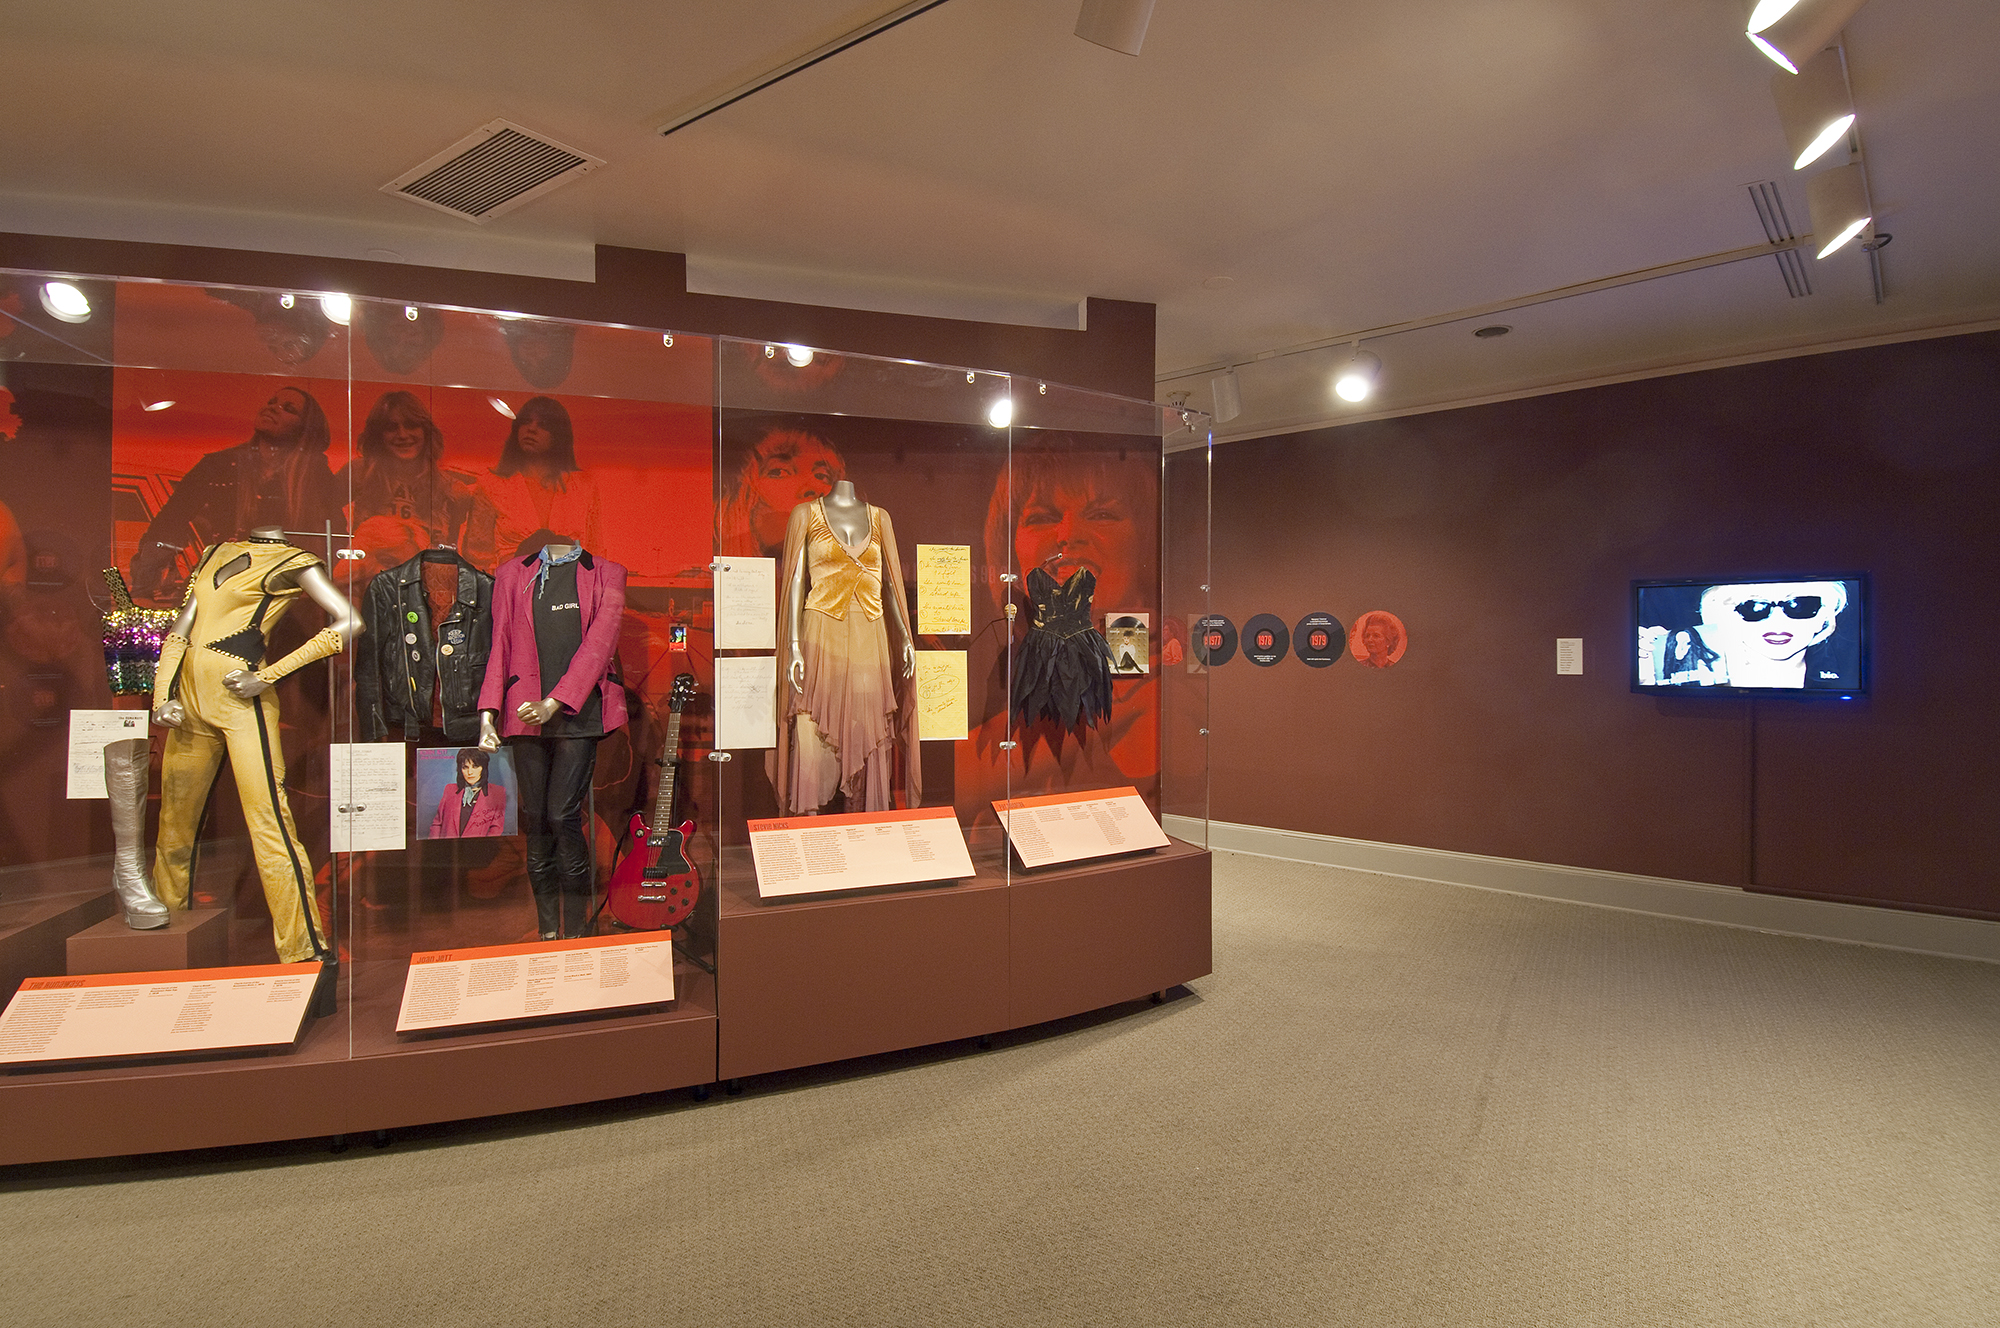 Gallery view showing a display case with a red background, its full of musician costumes.